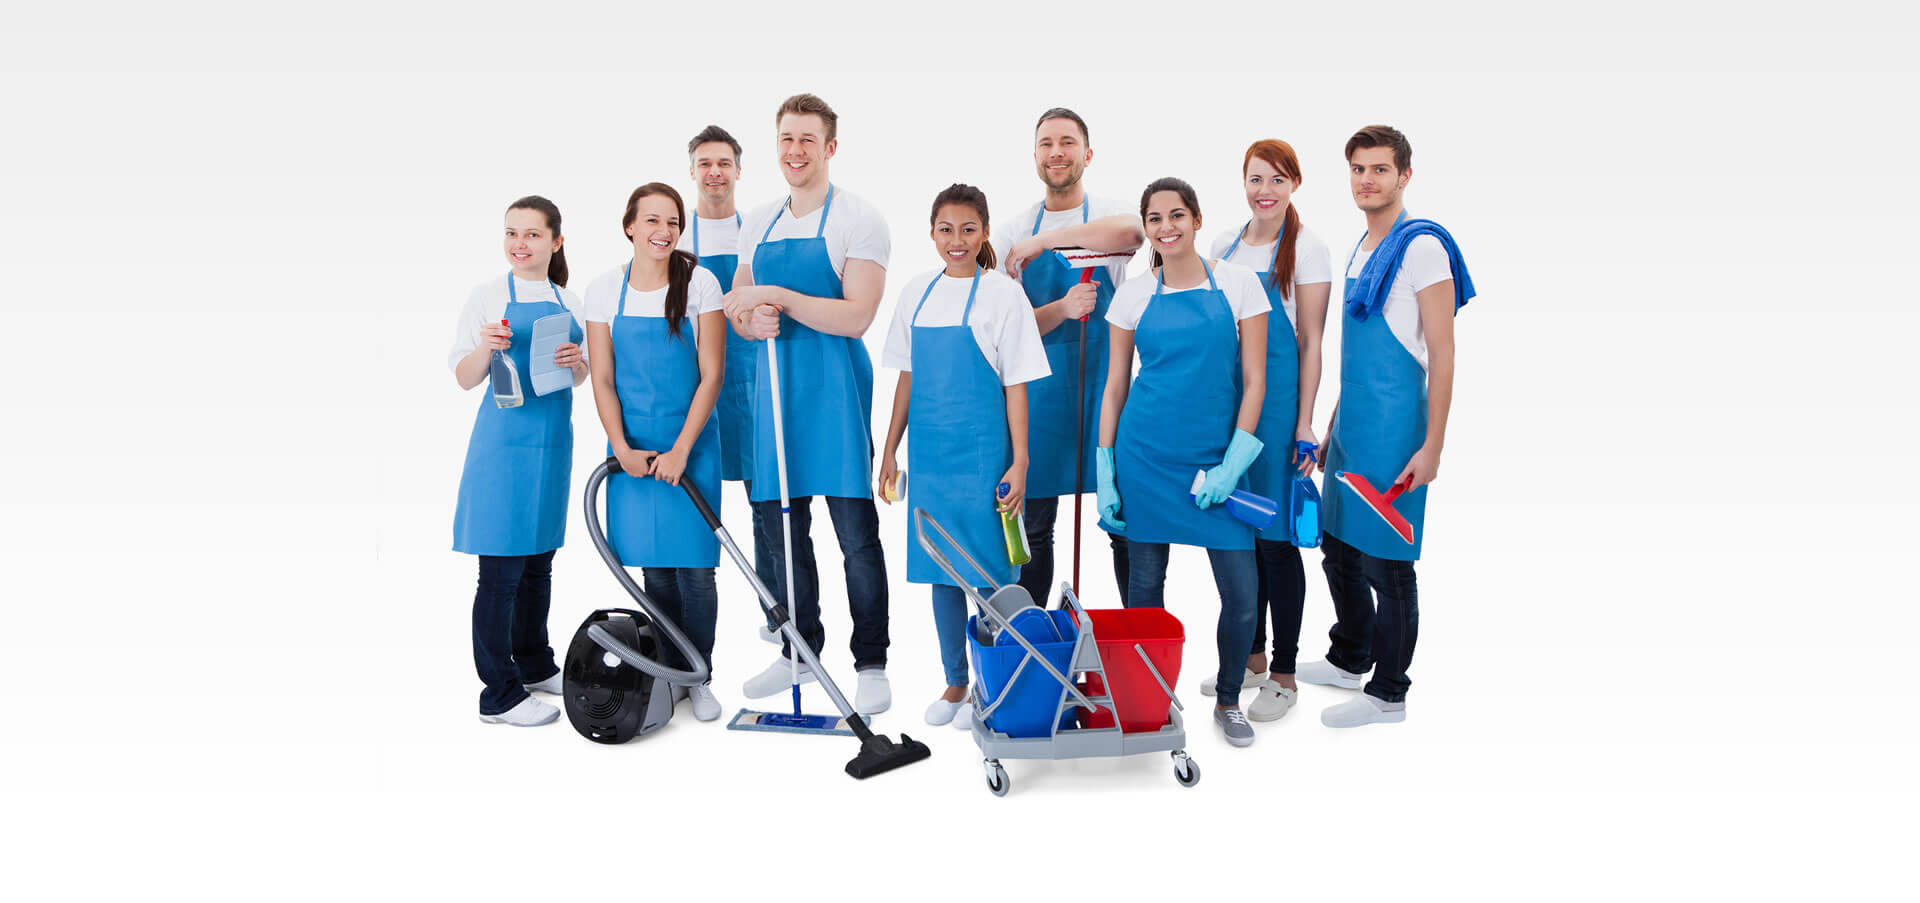 Contract-Cleaning-staffs-Group